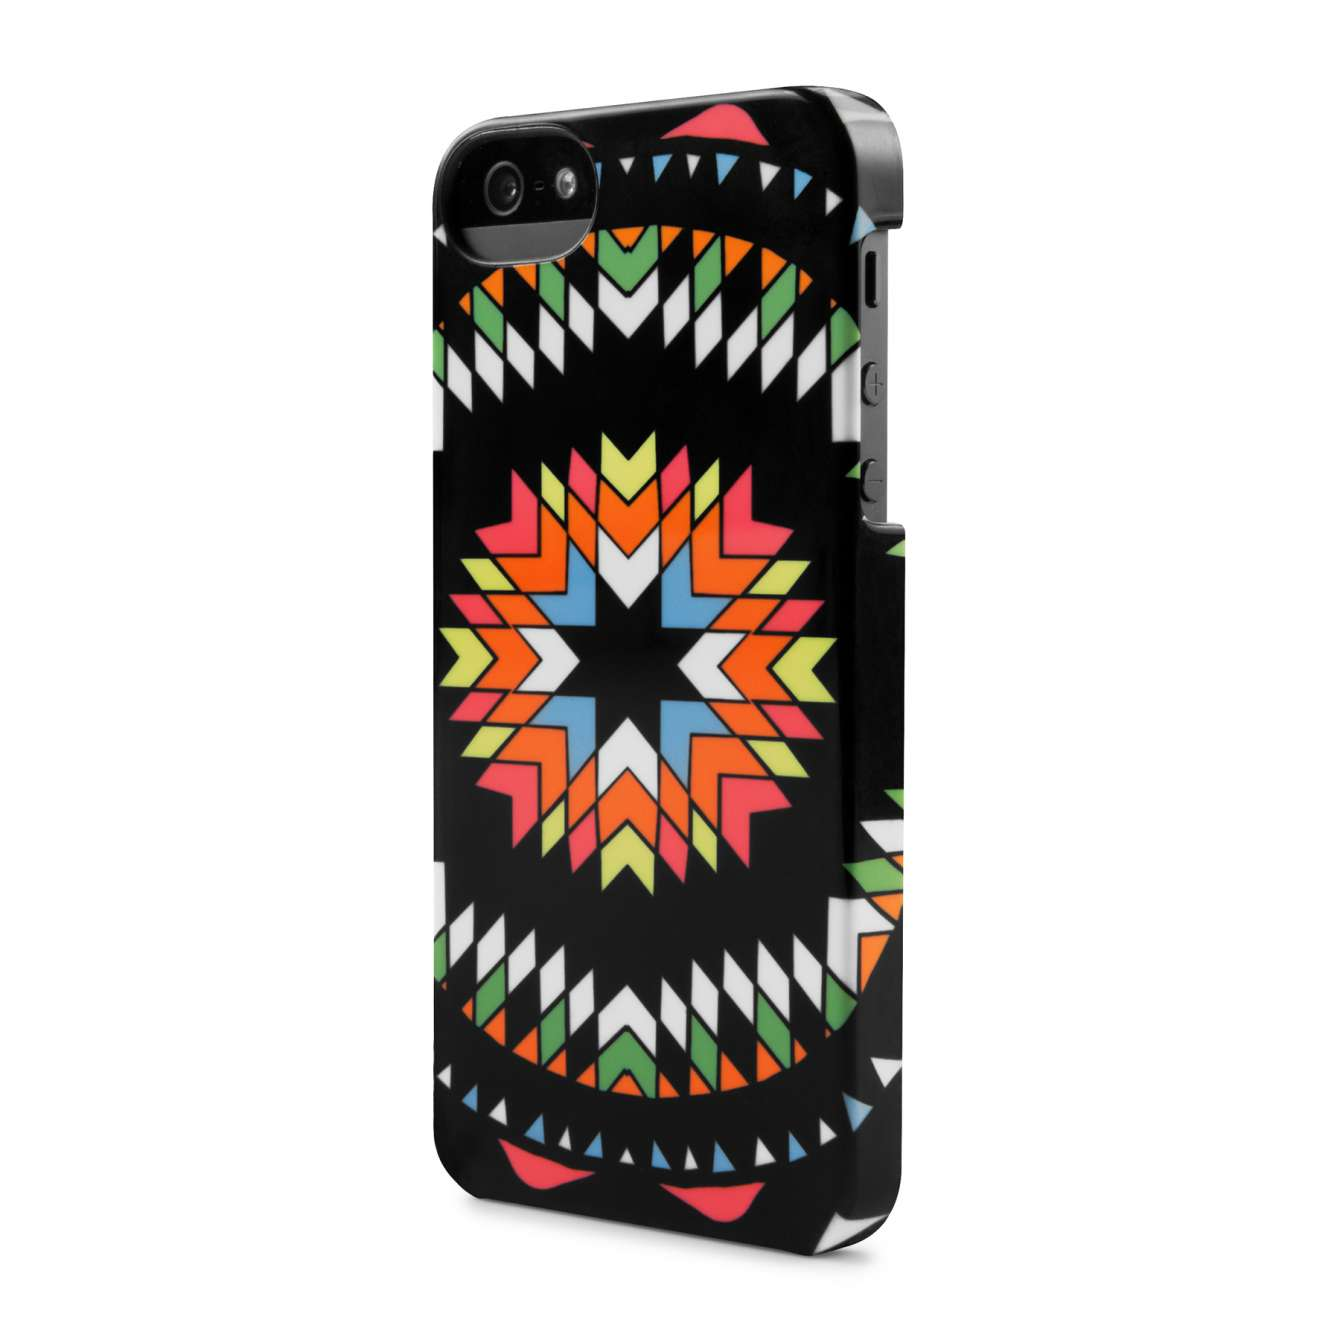 Mara Hoffman x Incase iPhone 5 Snap Cases-2